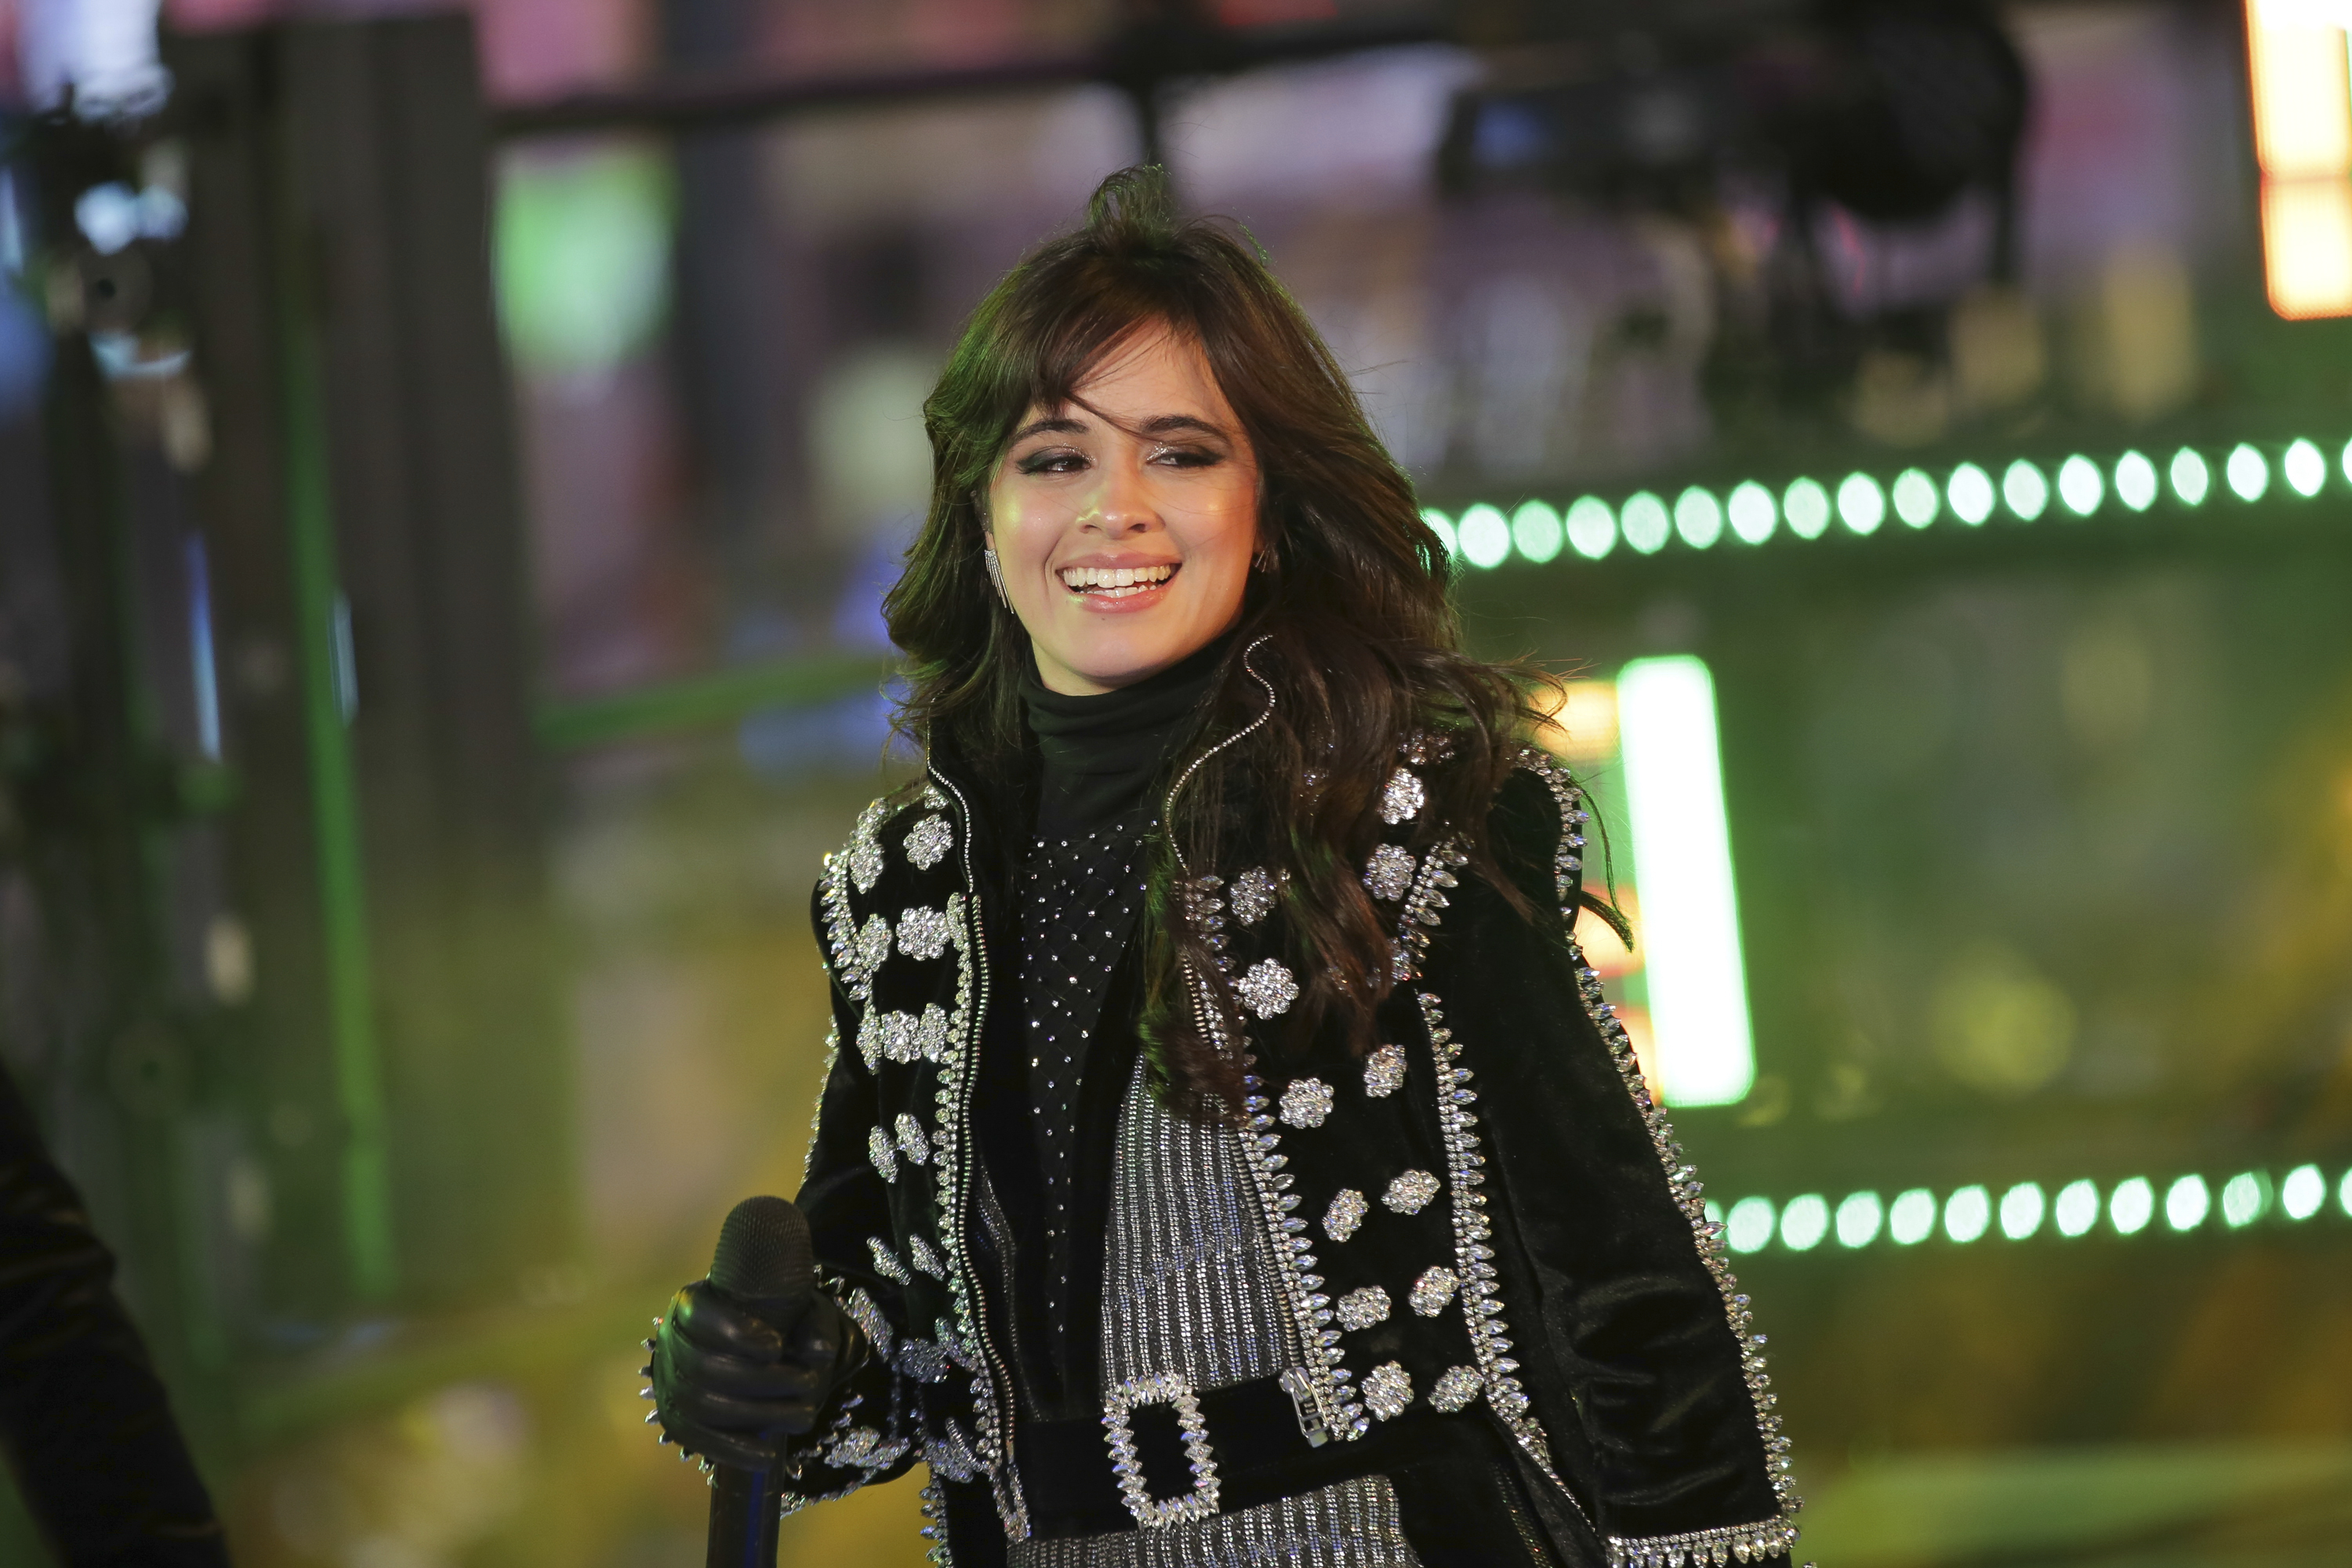 <div class='meta'><div class='origin-logo' data-origin='AP'></div><span class='caption-text' data-credit='Brent N. Clarke/Invision/AP'>Camila Cabello performs on stage at the New Year's Eve celebration in Times Square on Sunday, Dec. 31, 2017, in New York. (Photo by Brent N. Clarke/Invision/AP)</span></div>